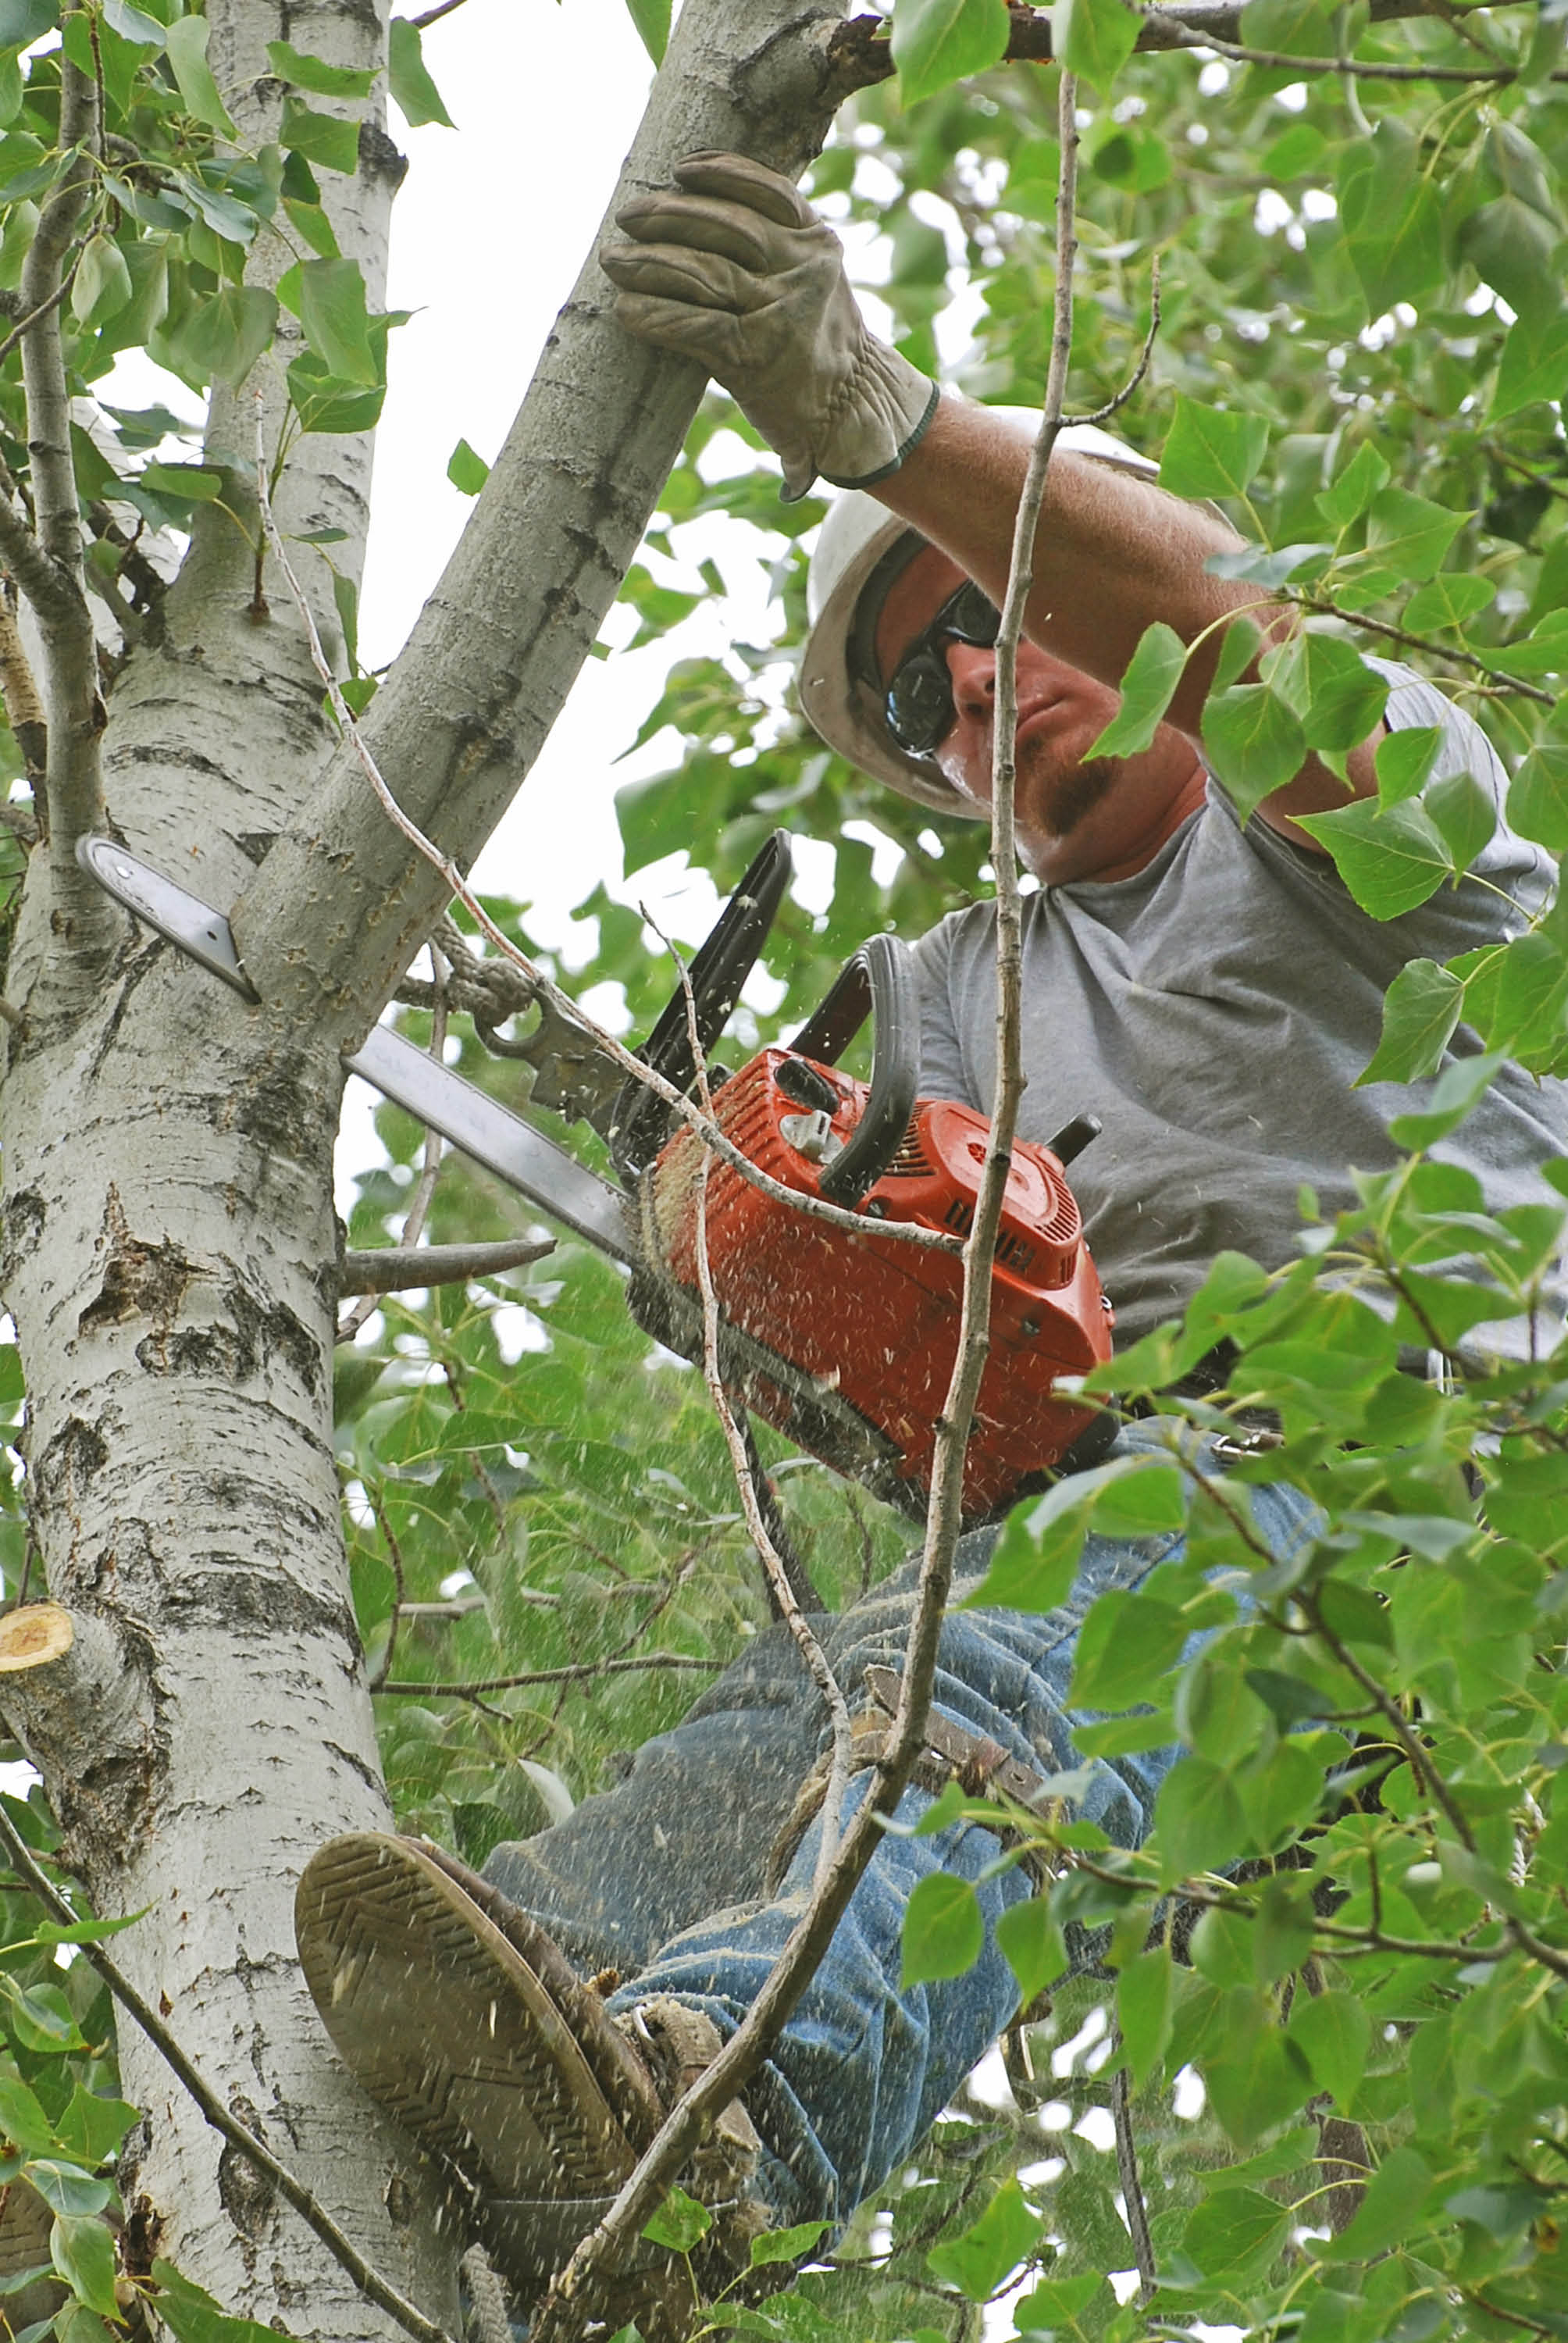 Mathias removes obstructive and dangerous tree limbs